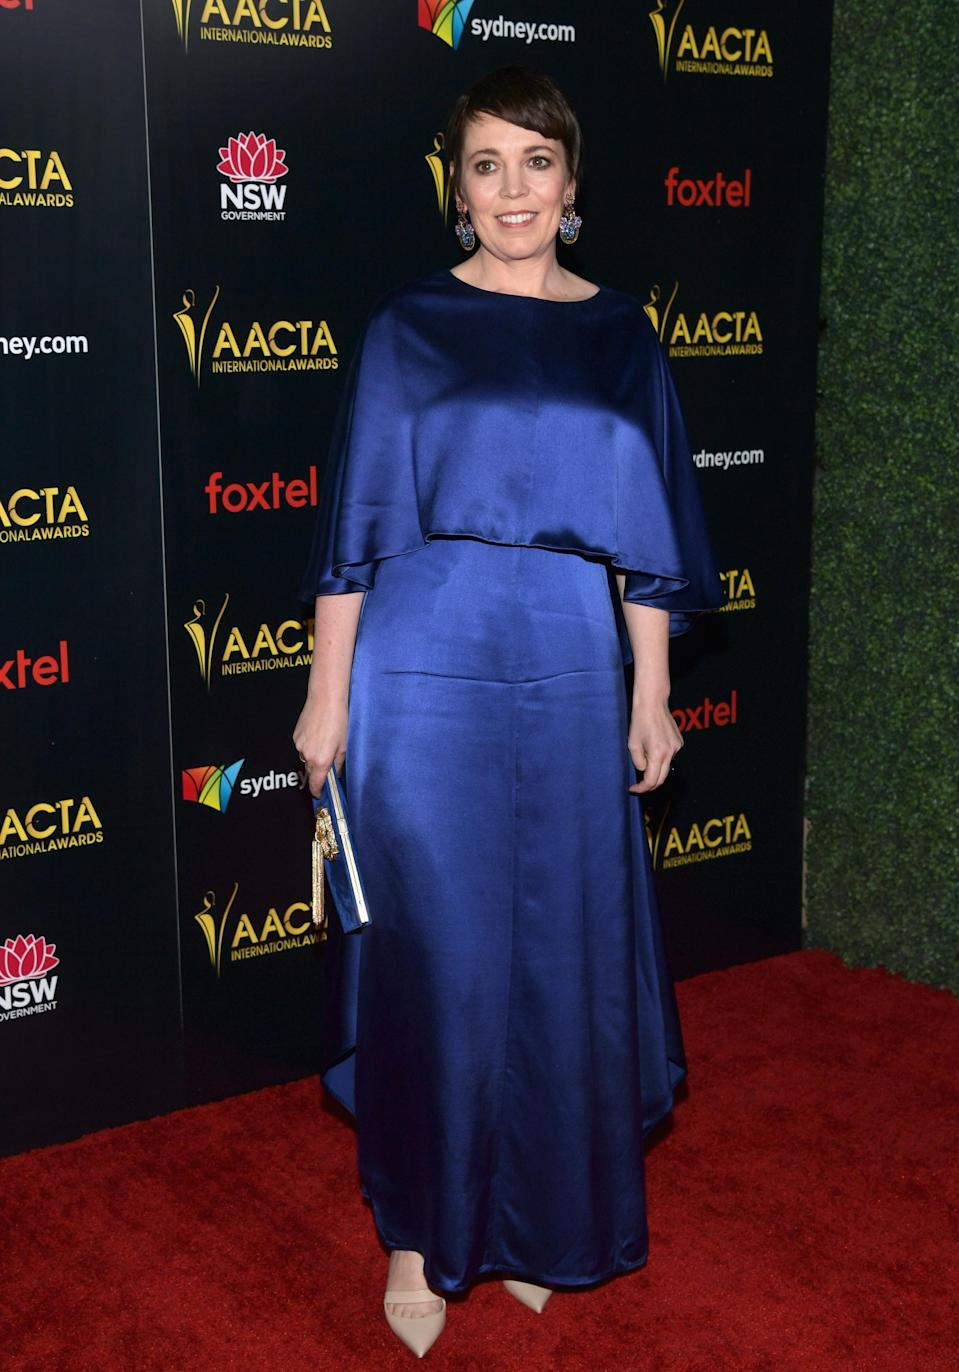 <p>British actress Olivia Colmen won the award for Best Lead Actress for her role in The Favourite. Photo: Getty </p>